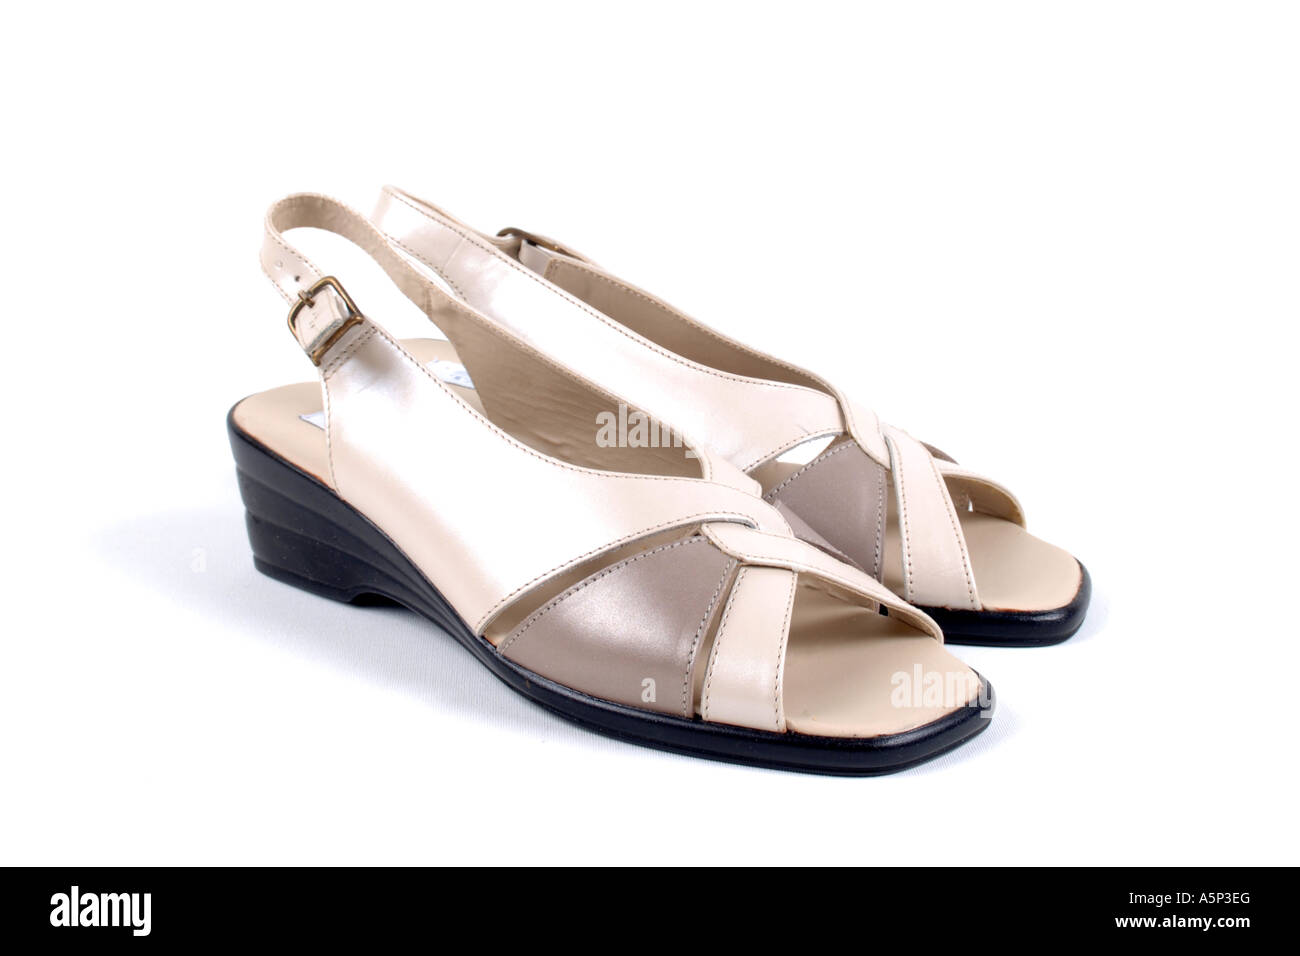 Informal womens wedge heel shoes Stock Photo  11359767 - Alamy 1d36db1499